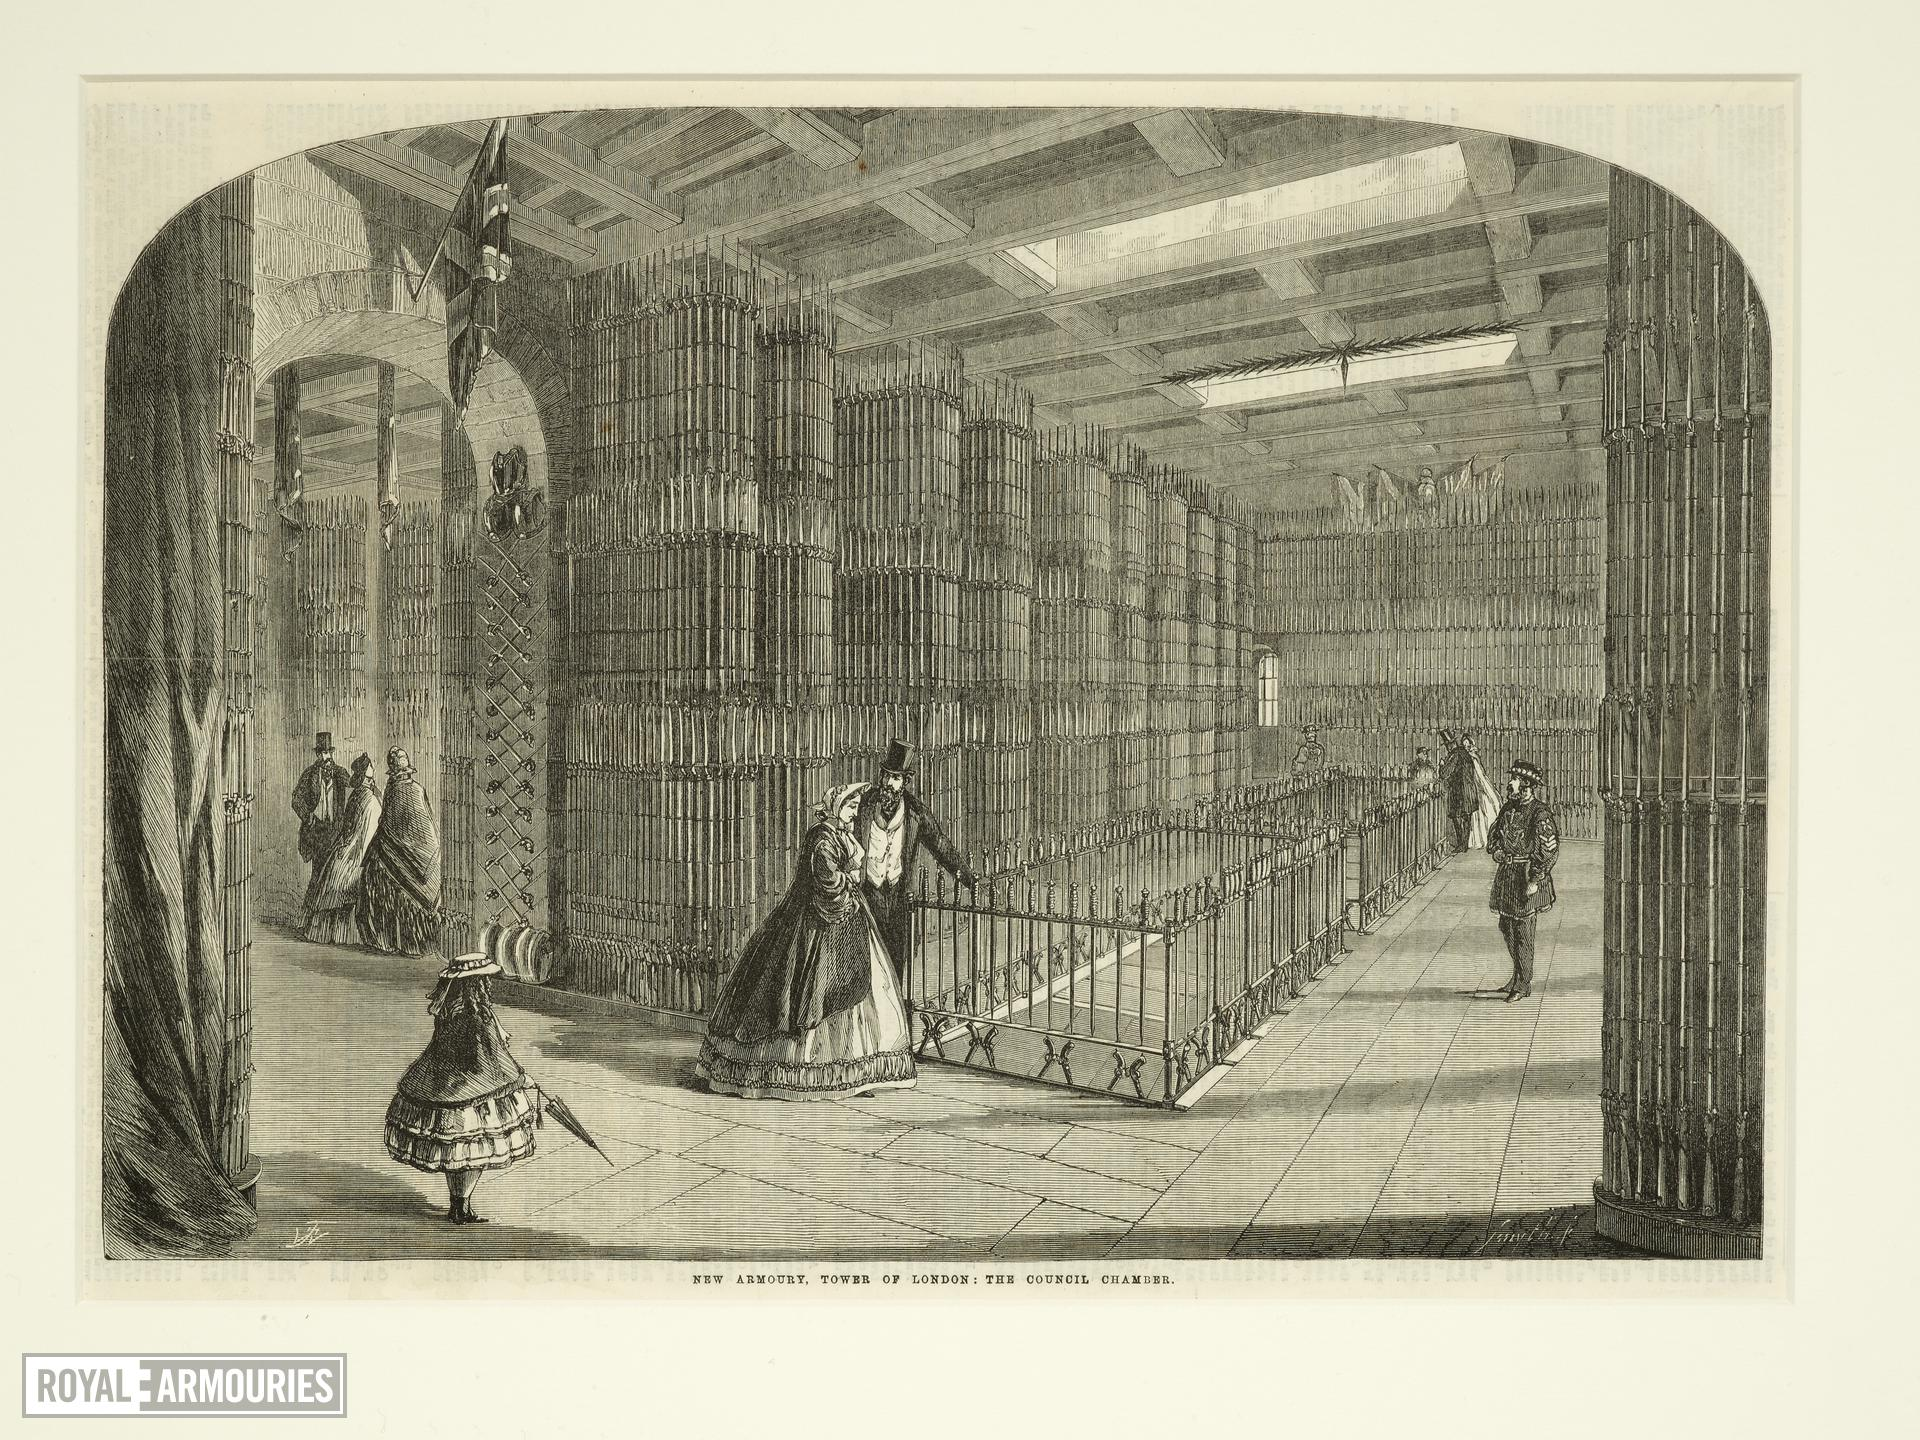 Print 'New Armoury, Tower of London: the Council Chamber', 1863